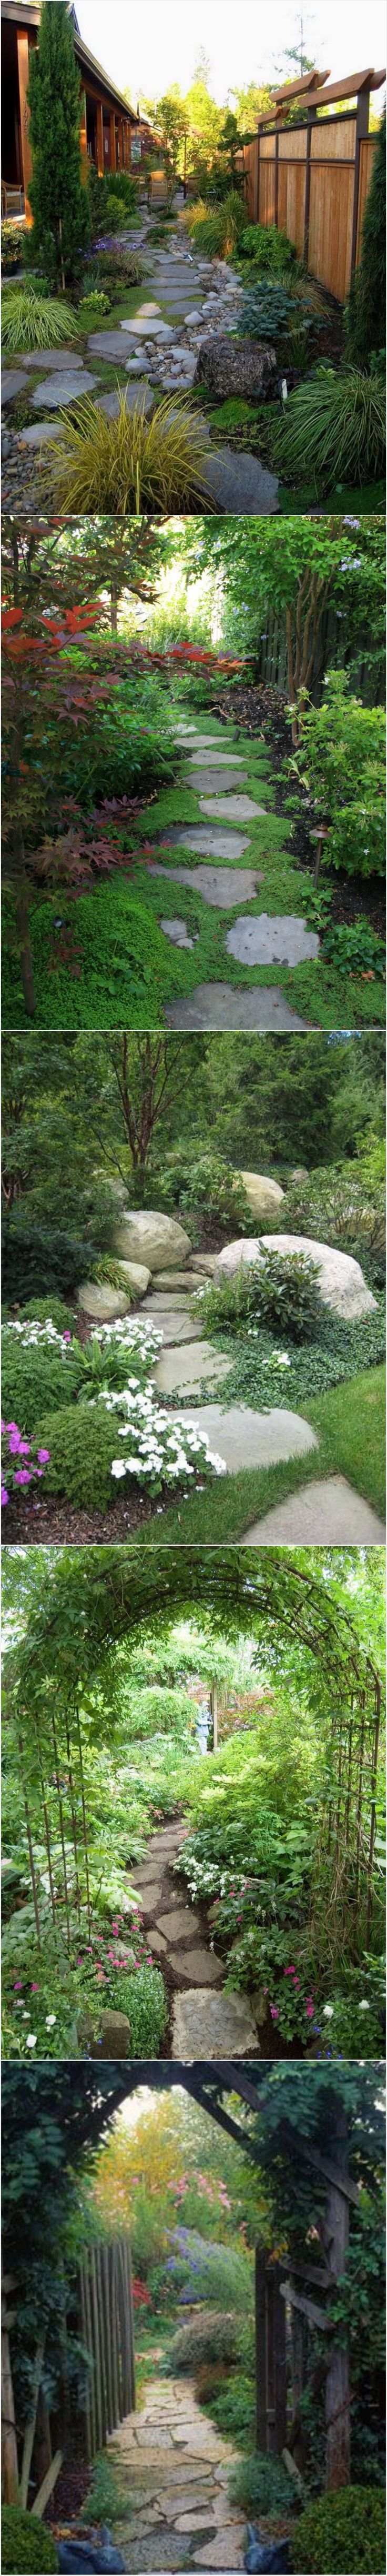 50 Enchanting Garden Paths 3996 best Garden